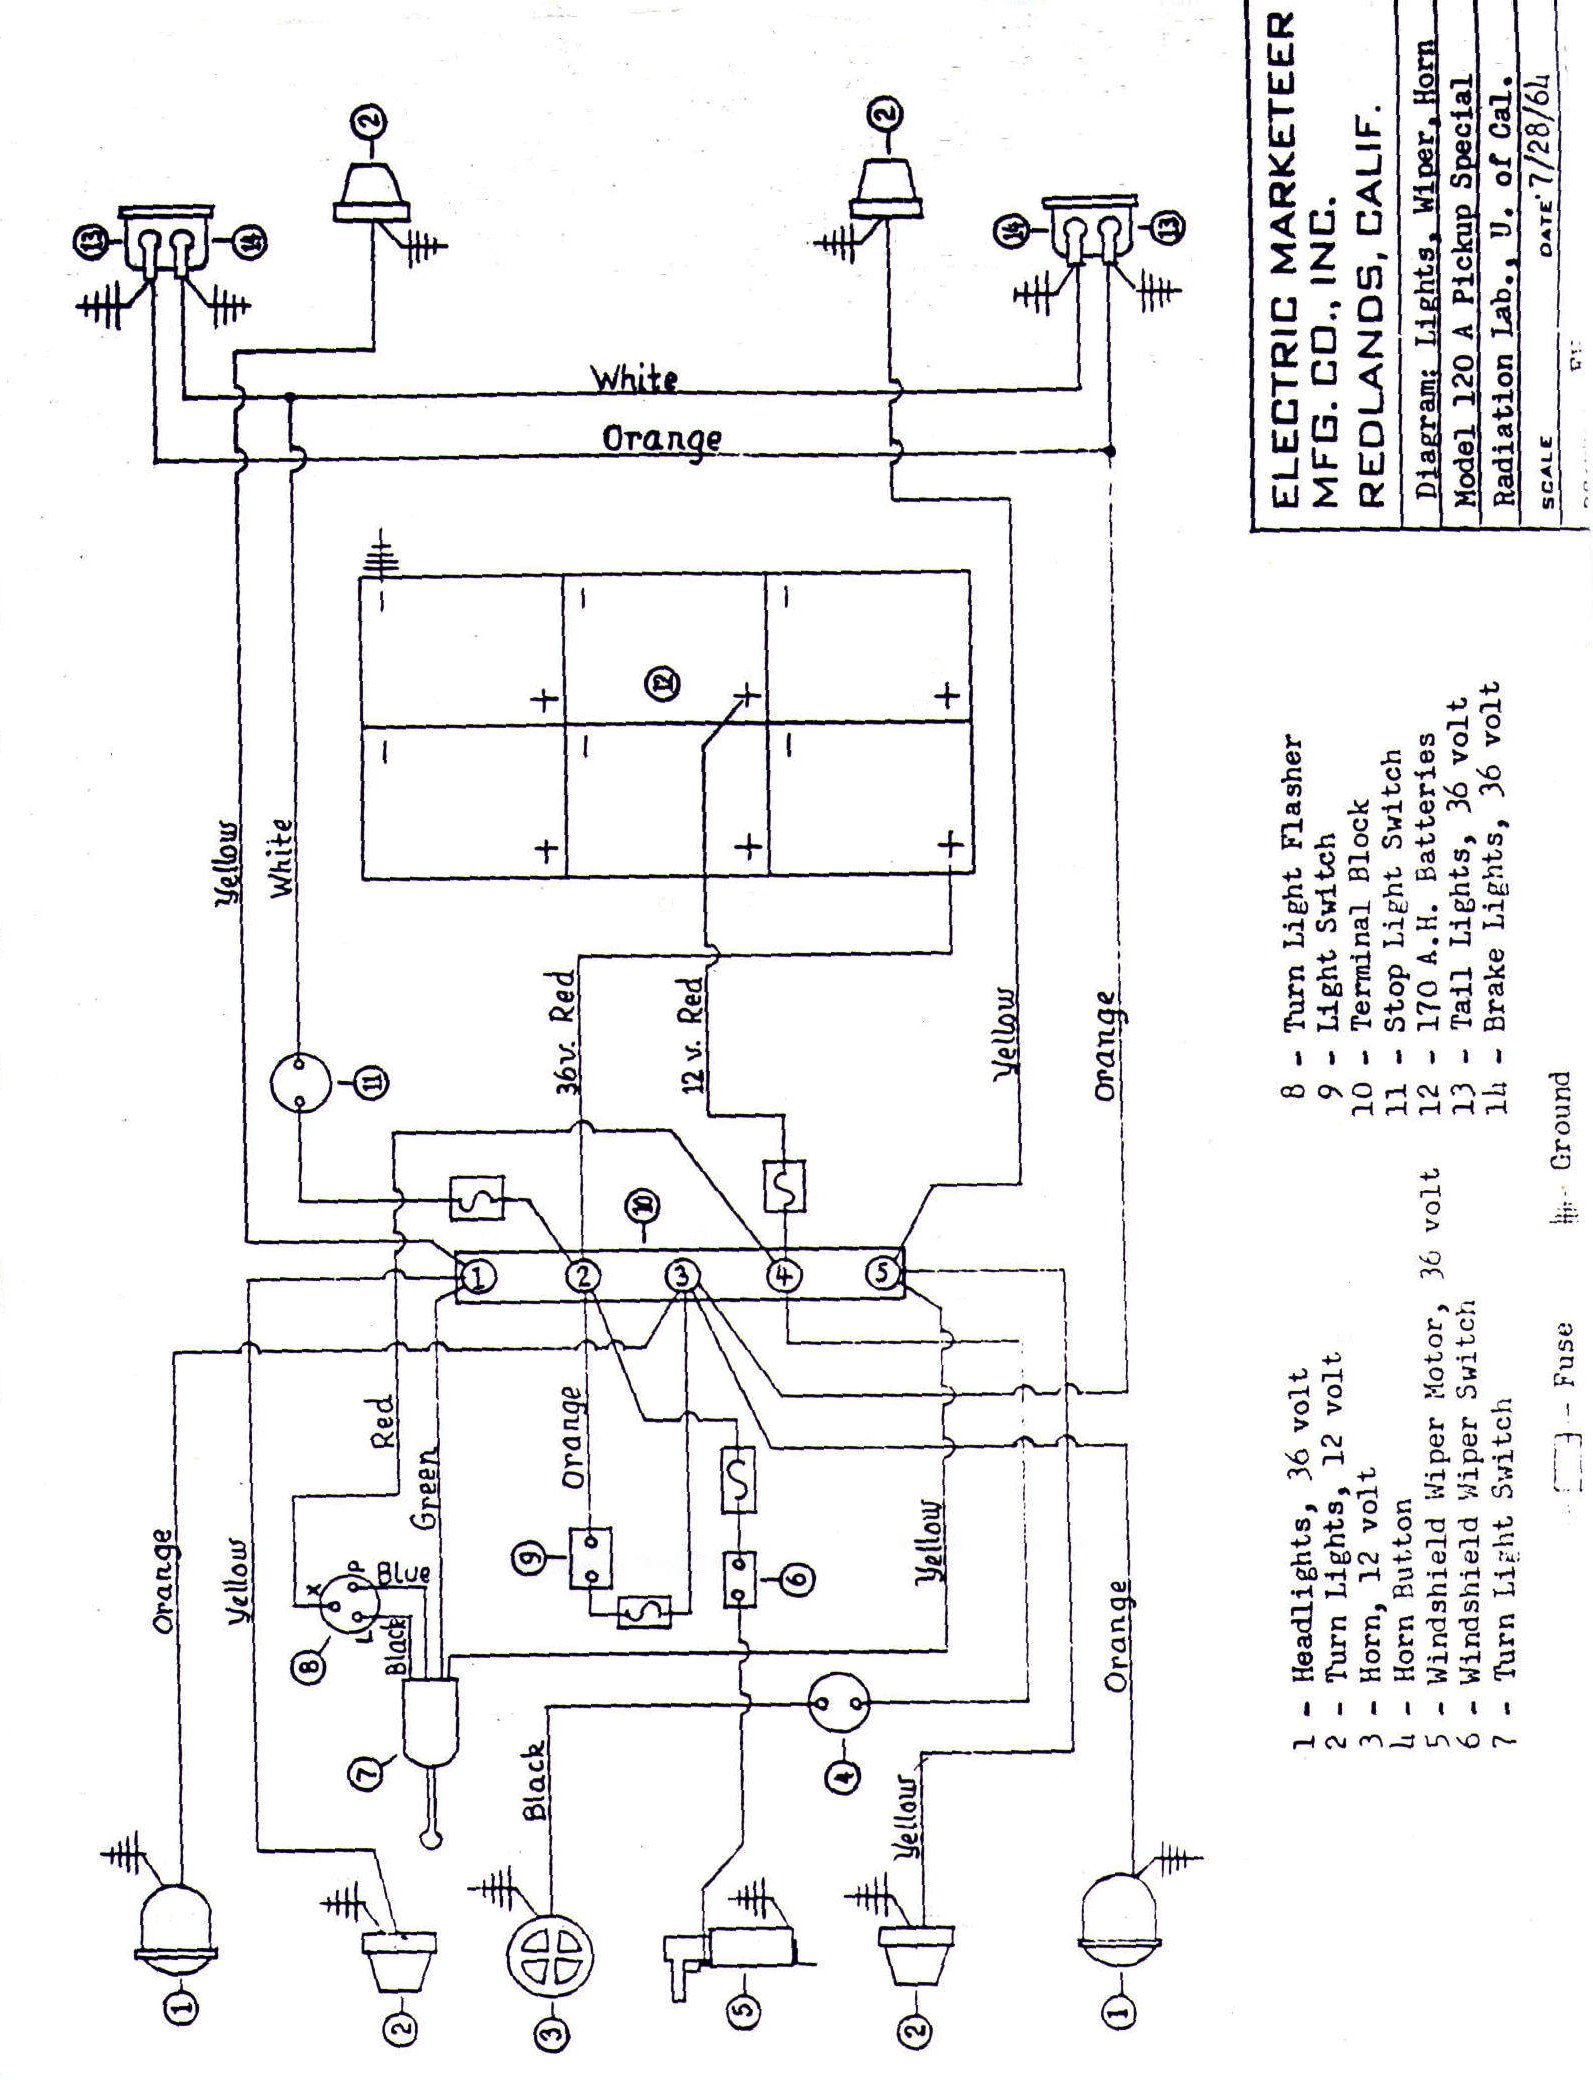 Markeeter_Wiring_Diagram_2 vintagegolfcartparts com westinghouse golf cart wiring diagram at fashall.co